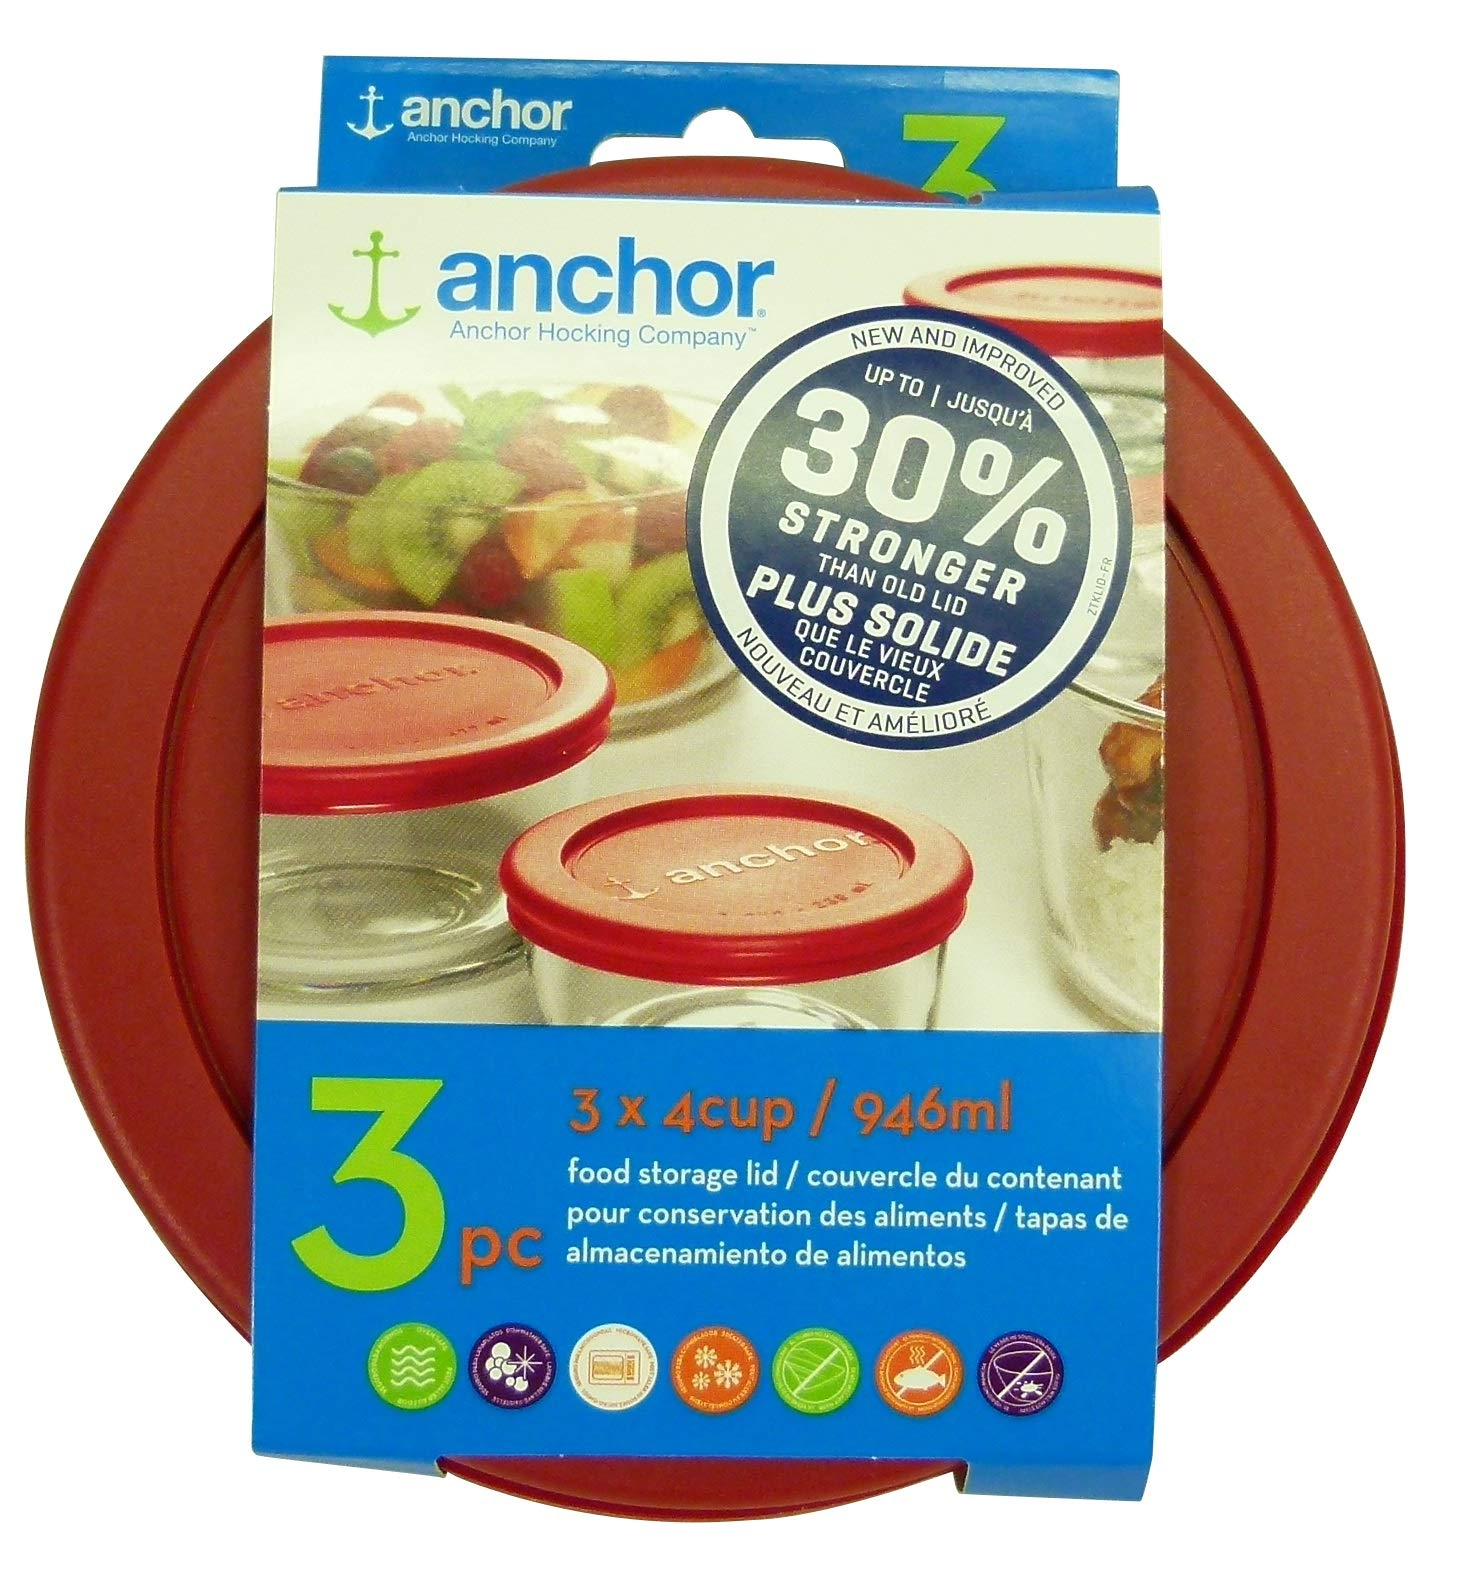 Anchor Hocking Improved 30% Stronger Replacement Lid 4 Cup / 946 ml / 1 qt, Set of 3 lids, Red Round by Anchor Hocking